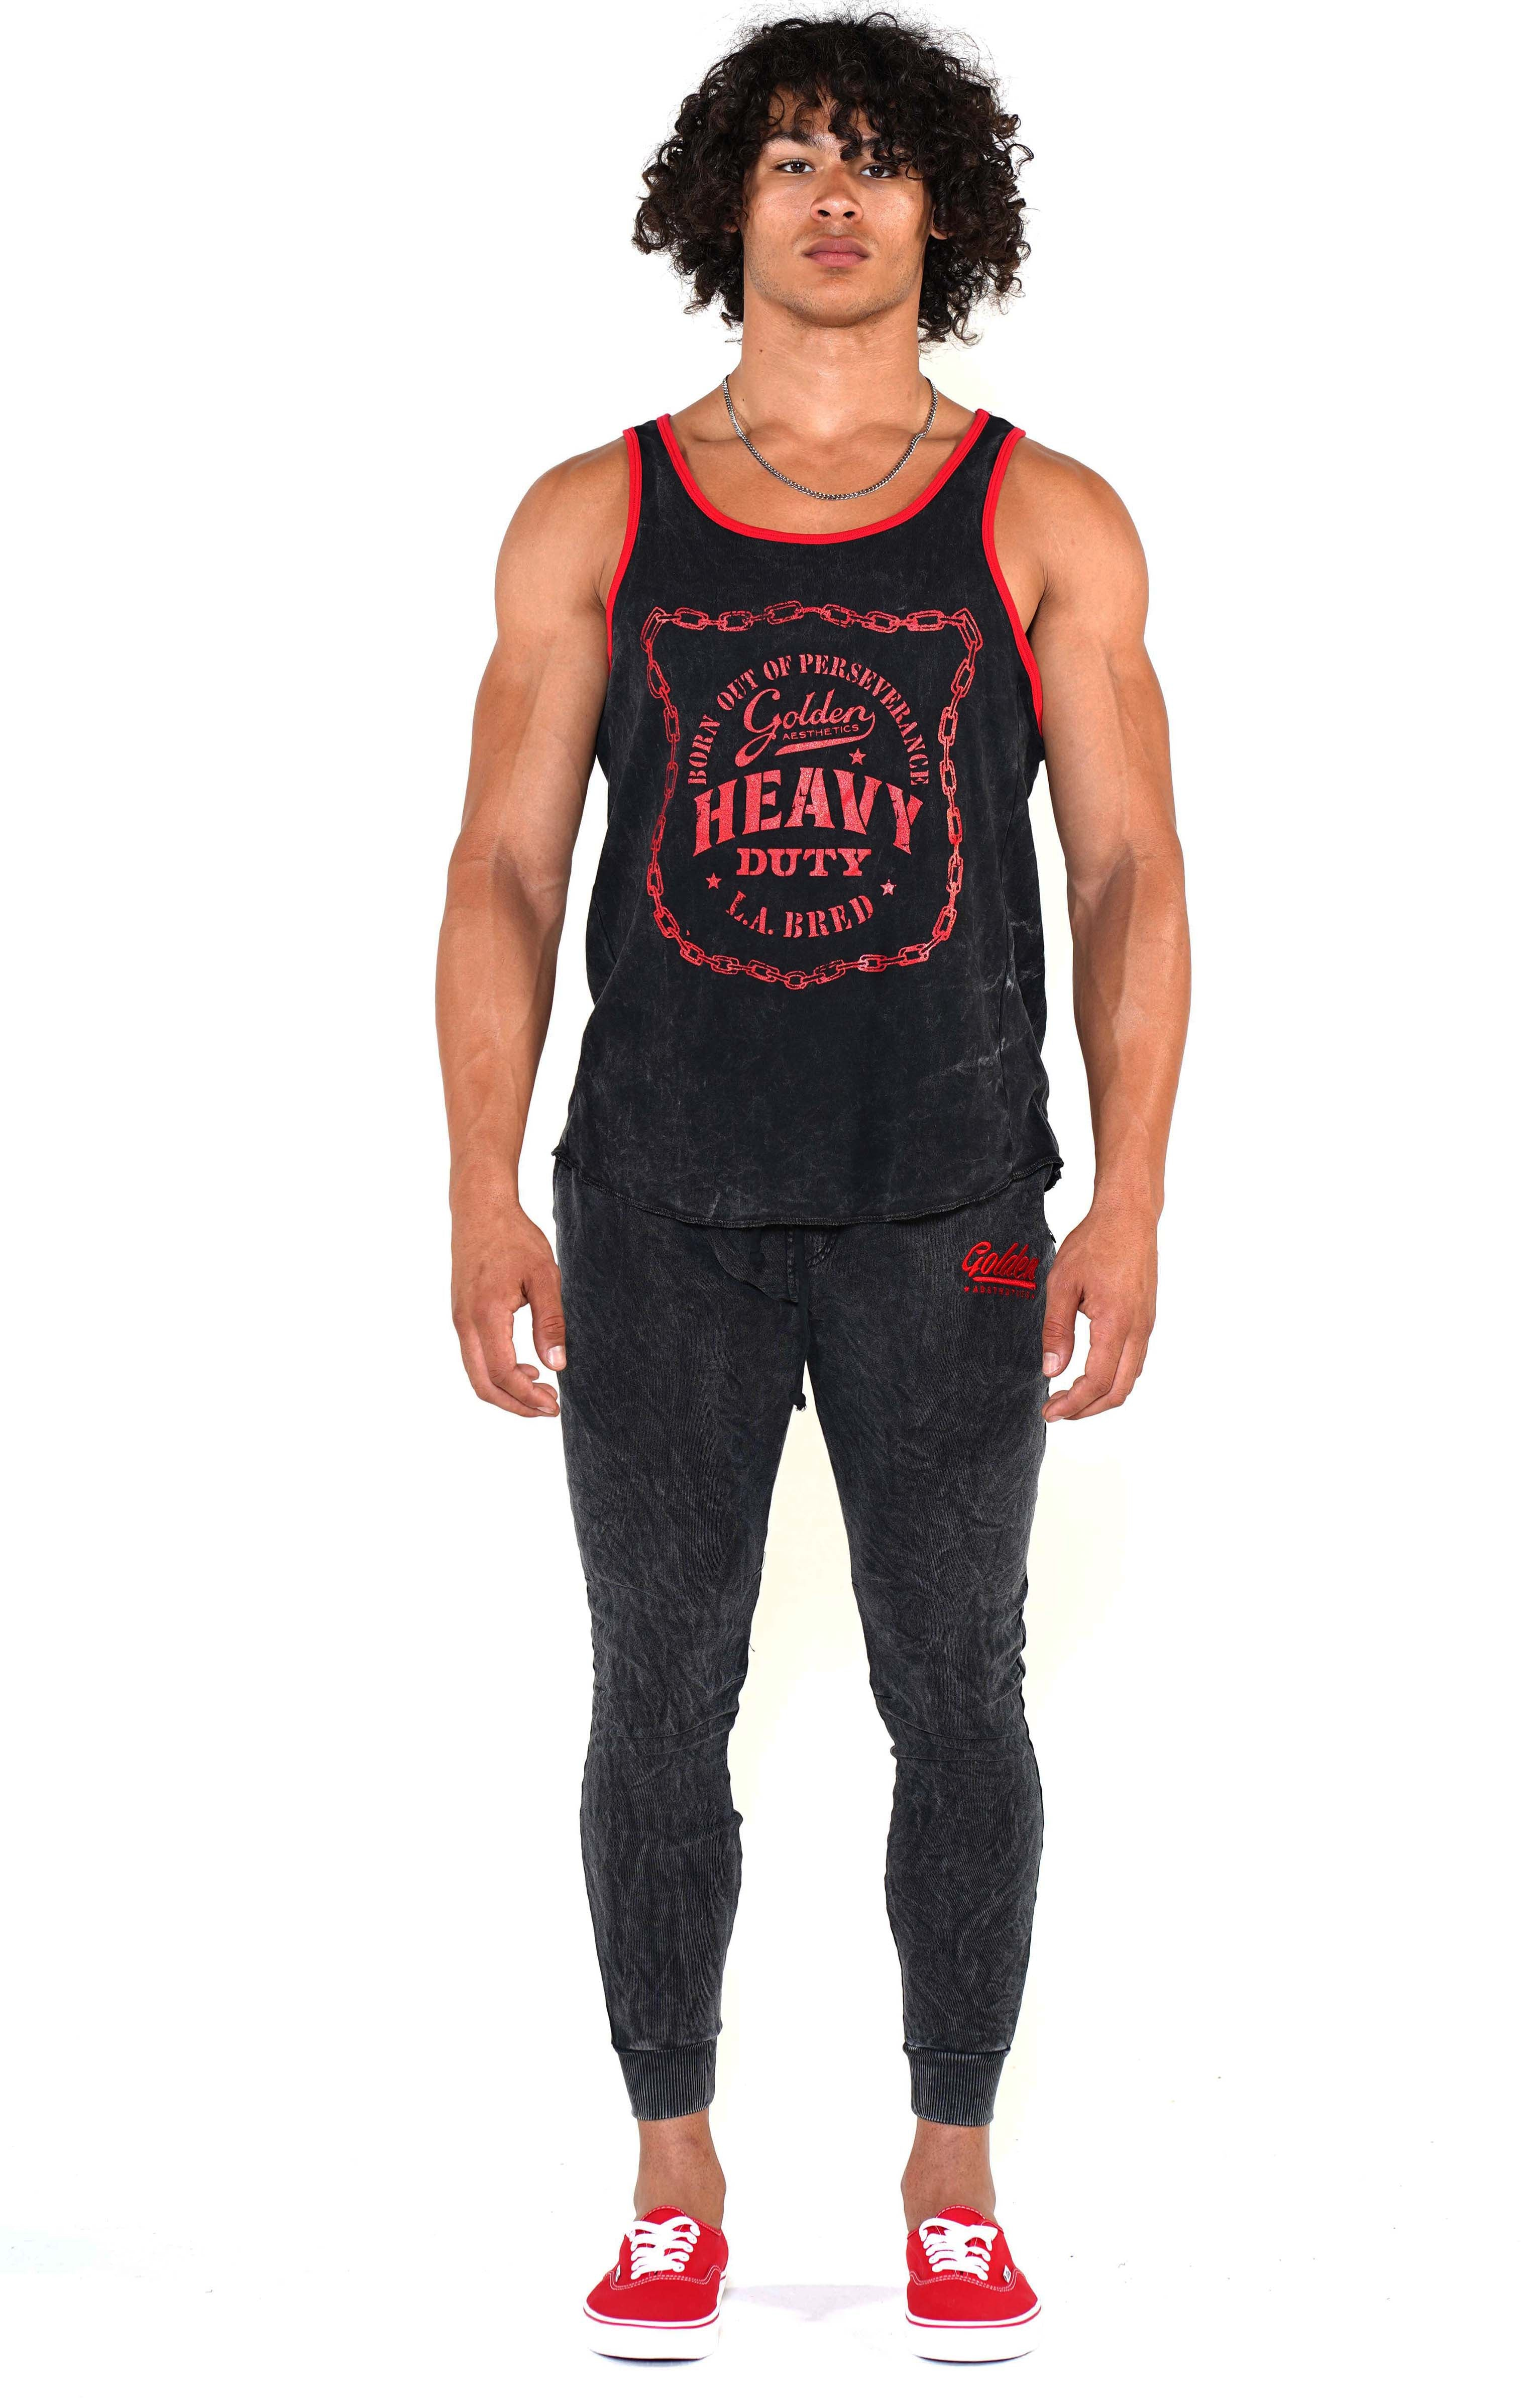 Men's Mineral Black Heavy Duty Ringer Tank - Golden Aesthetics